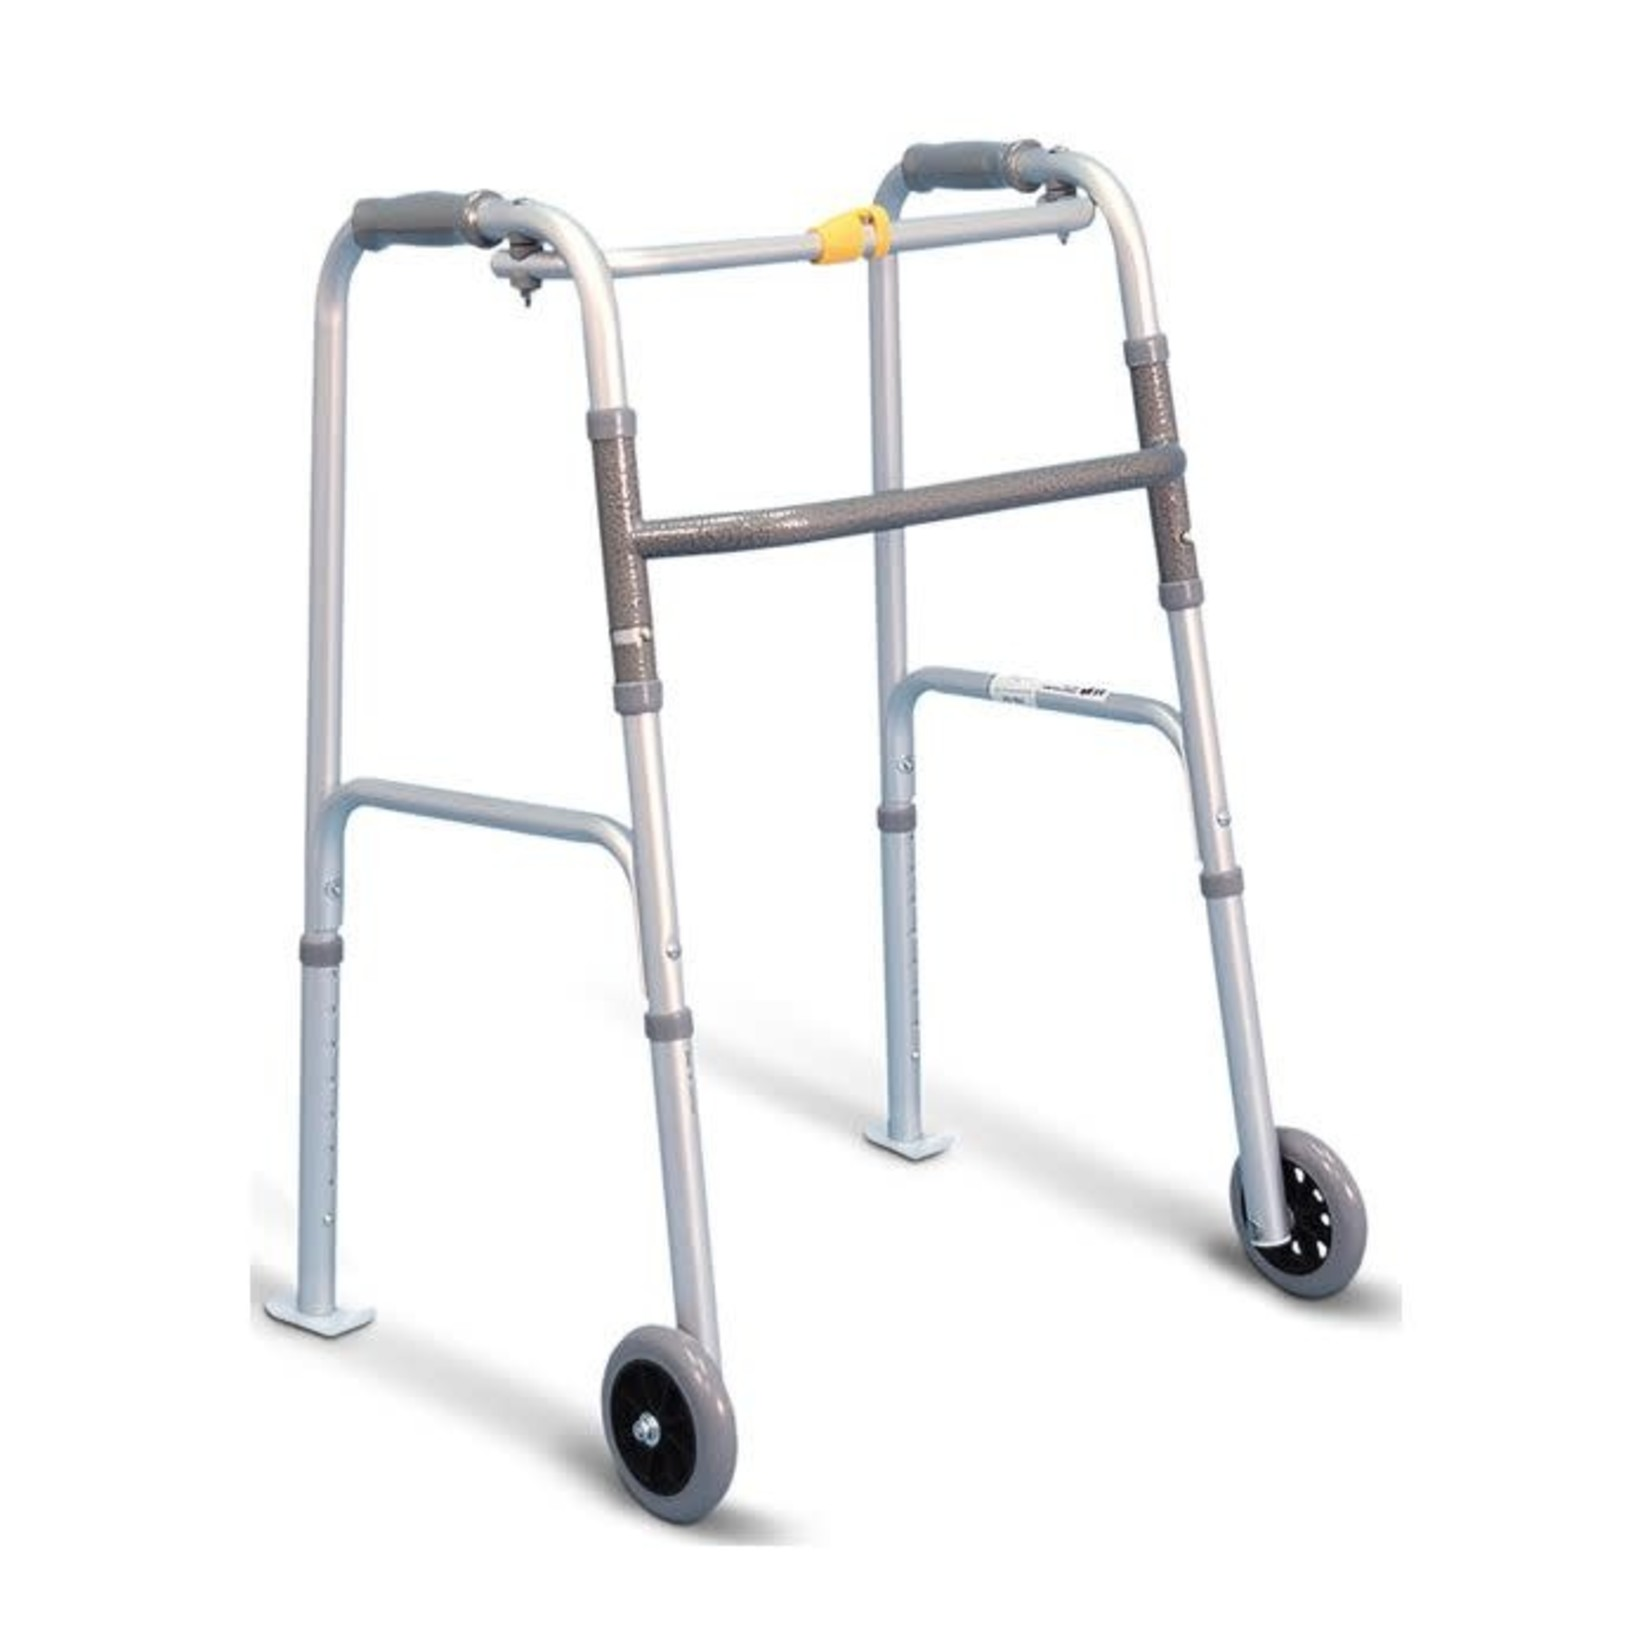 Pro-Aide Walker with wheels & skis - 1 button